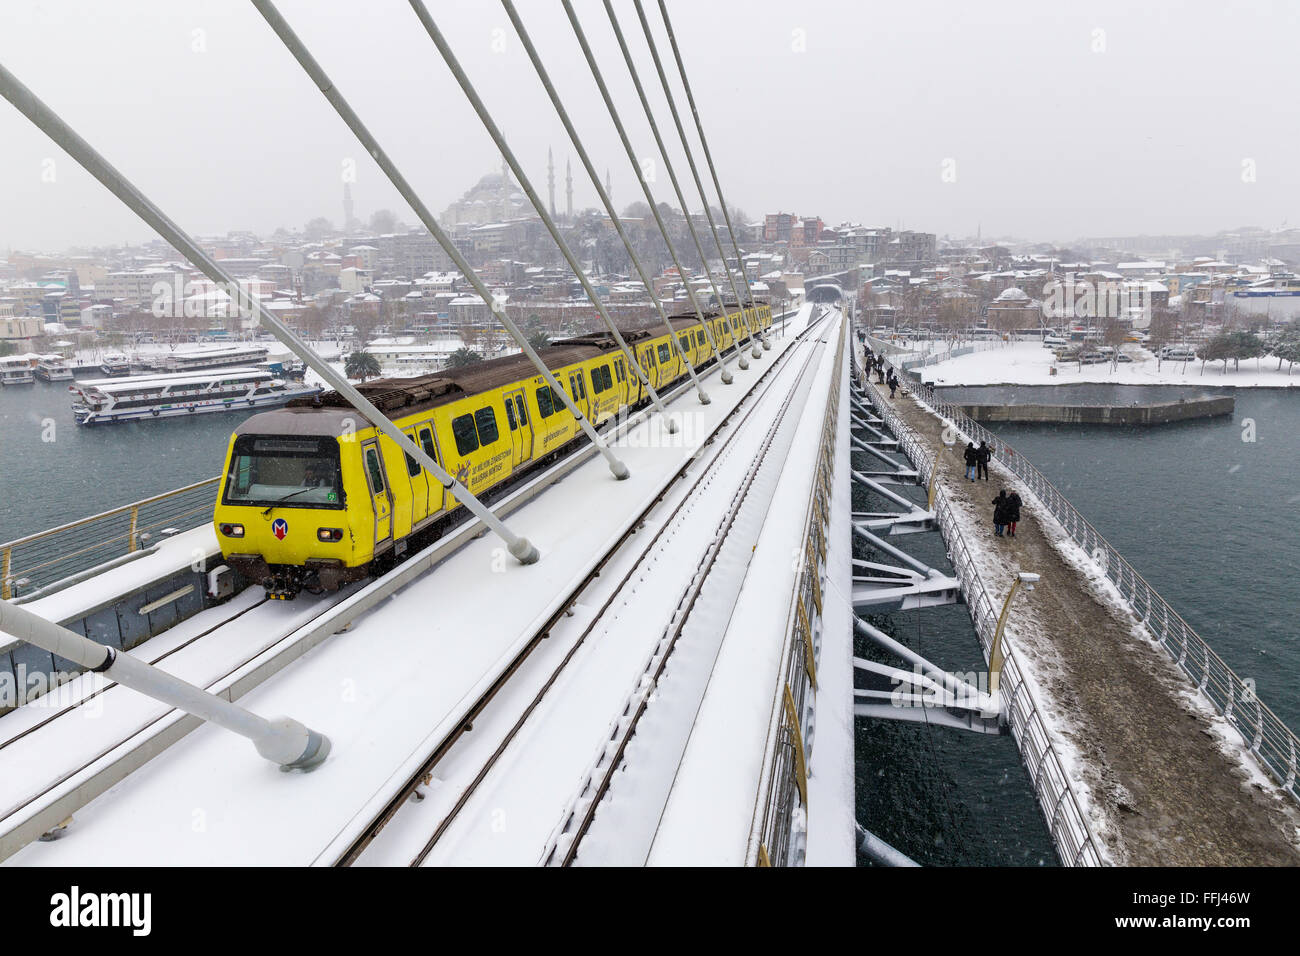 Istanbul subway metro train passing and people walking on the Golden Horn Metro Bridge on a snowy day near Halic - Stock Image